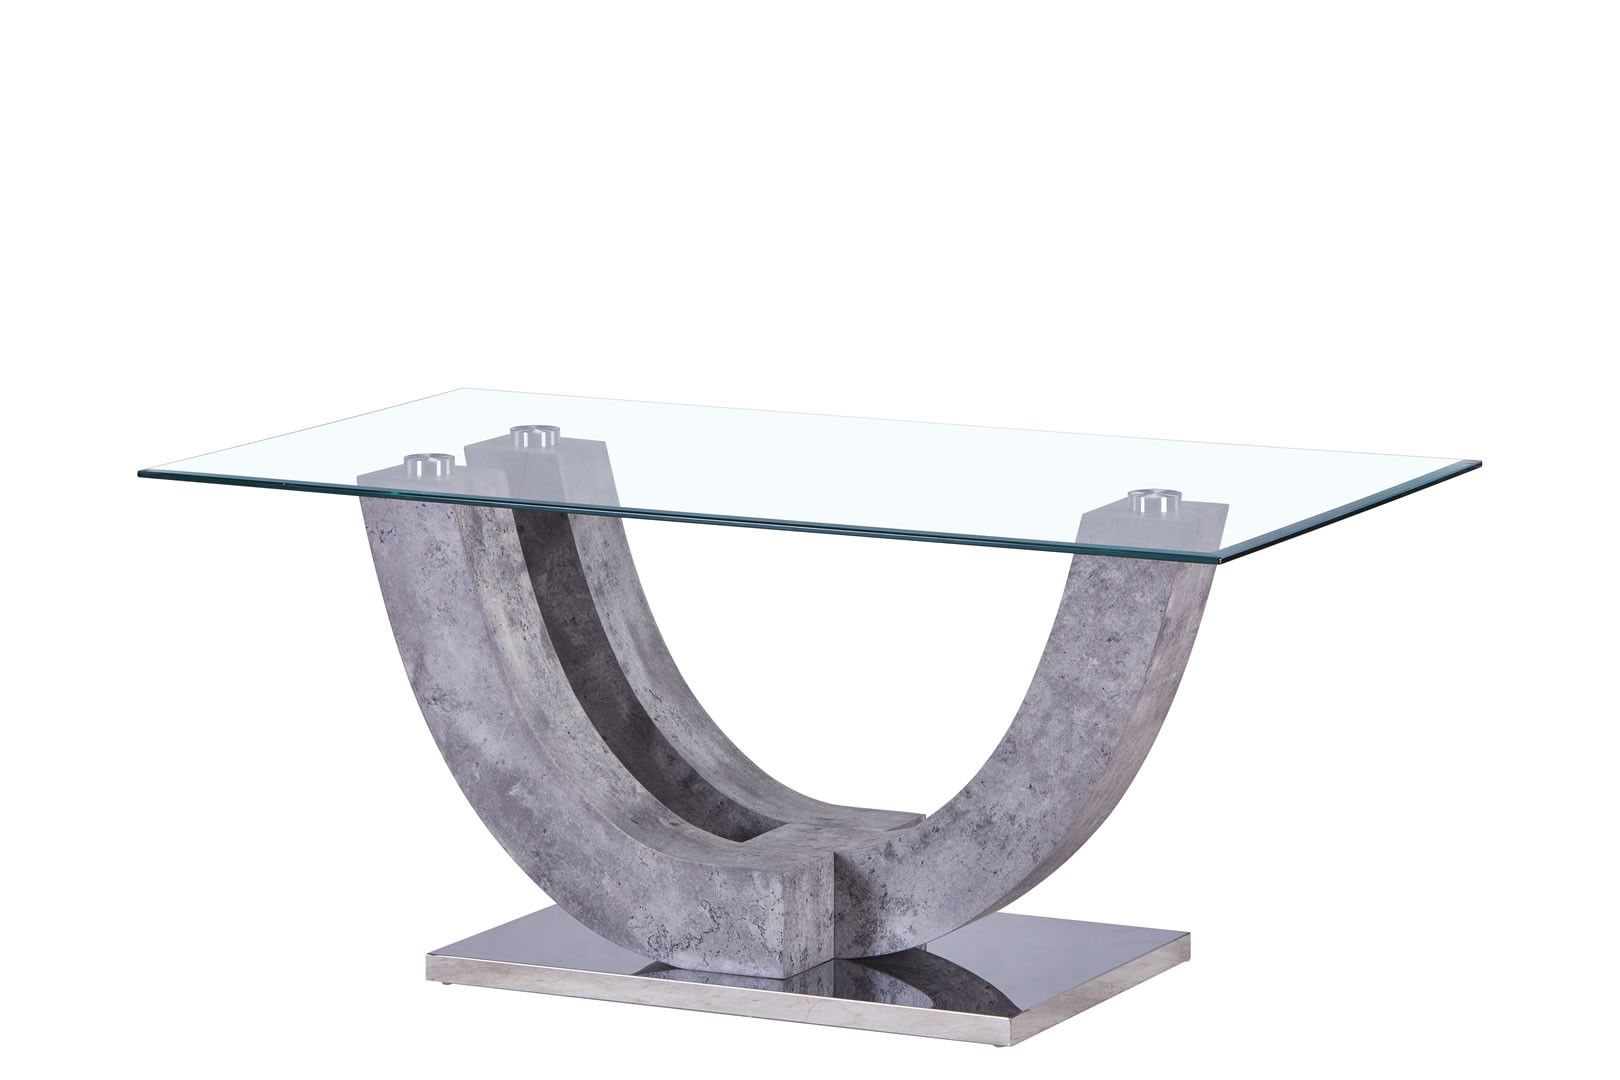 Table Basse En Beton Table Basse Design En Verre Forme U Gris Béton Tuti